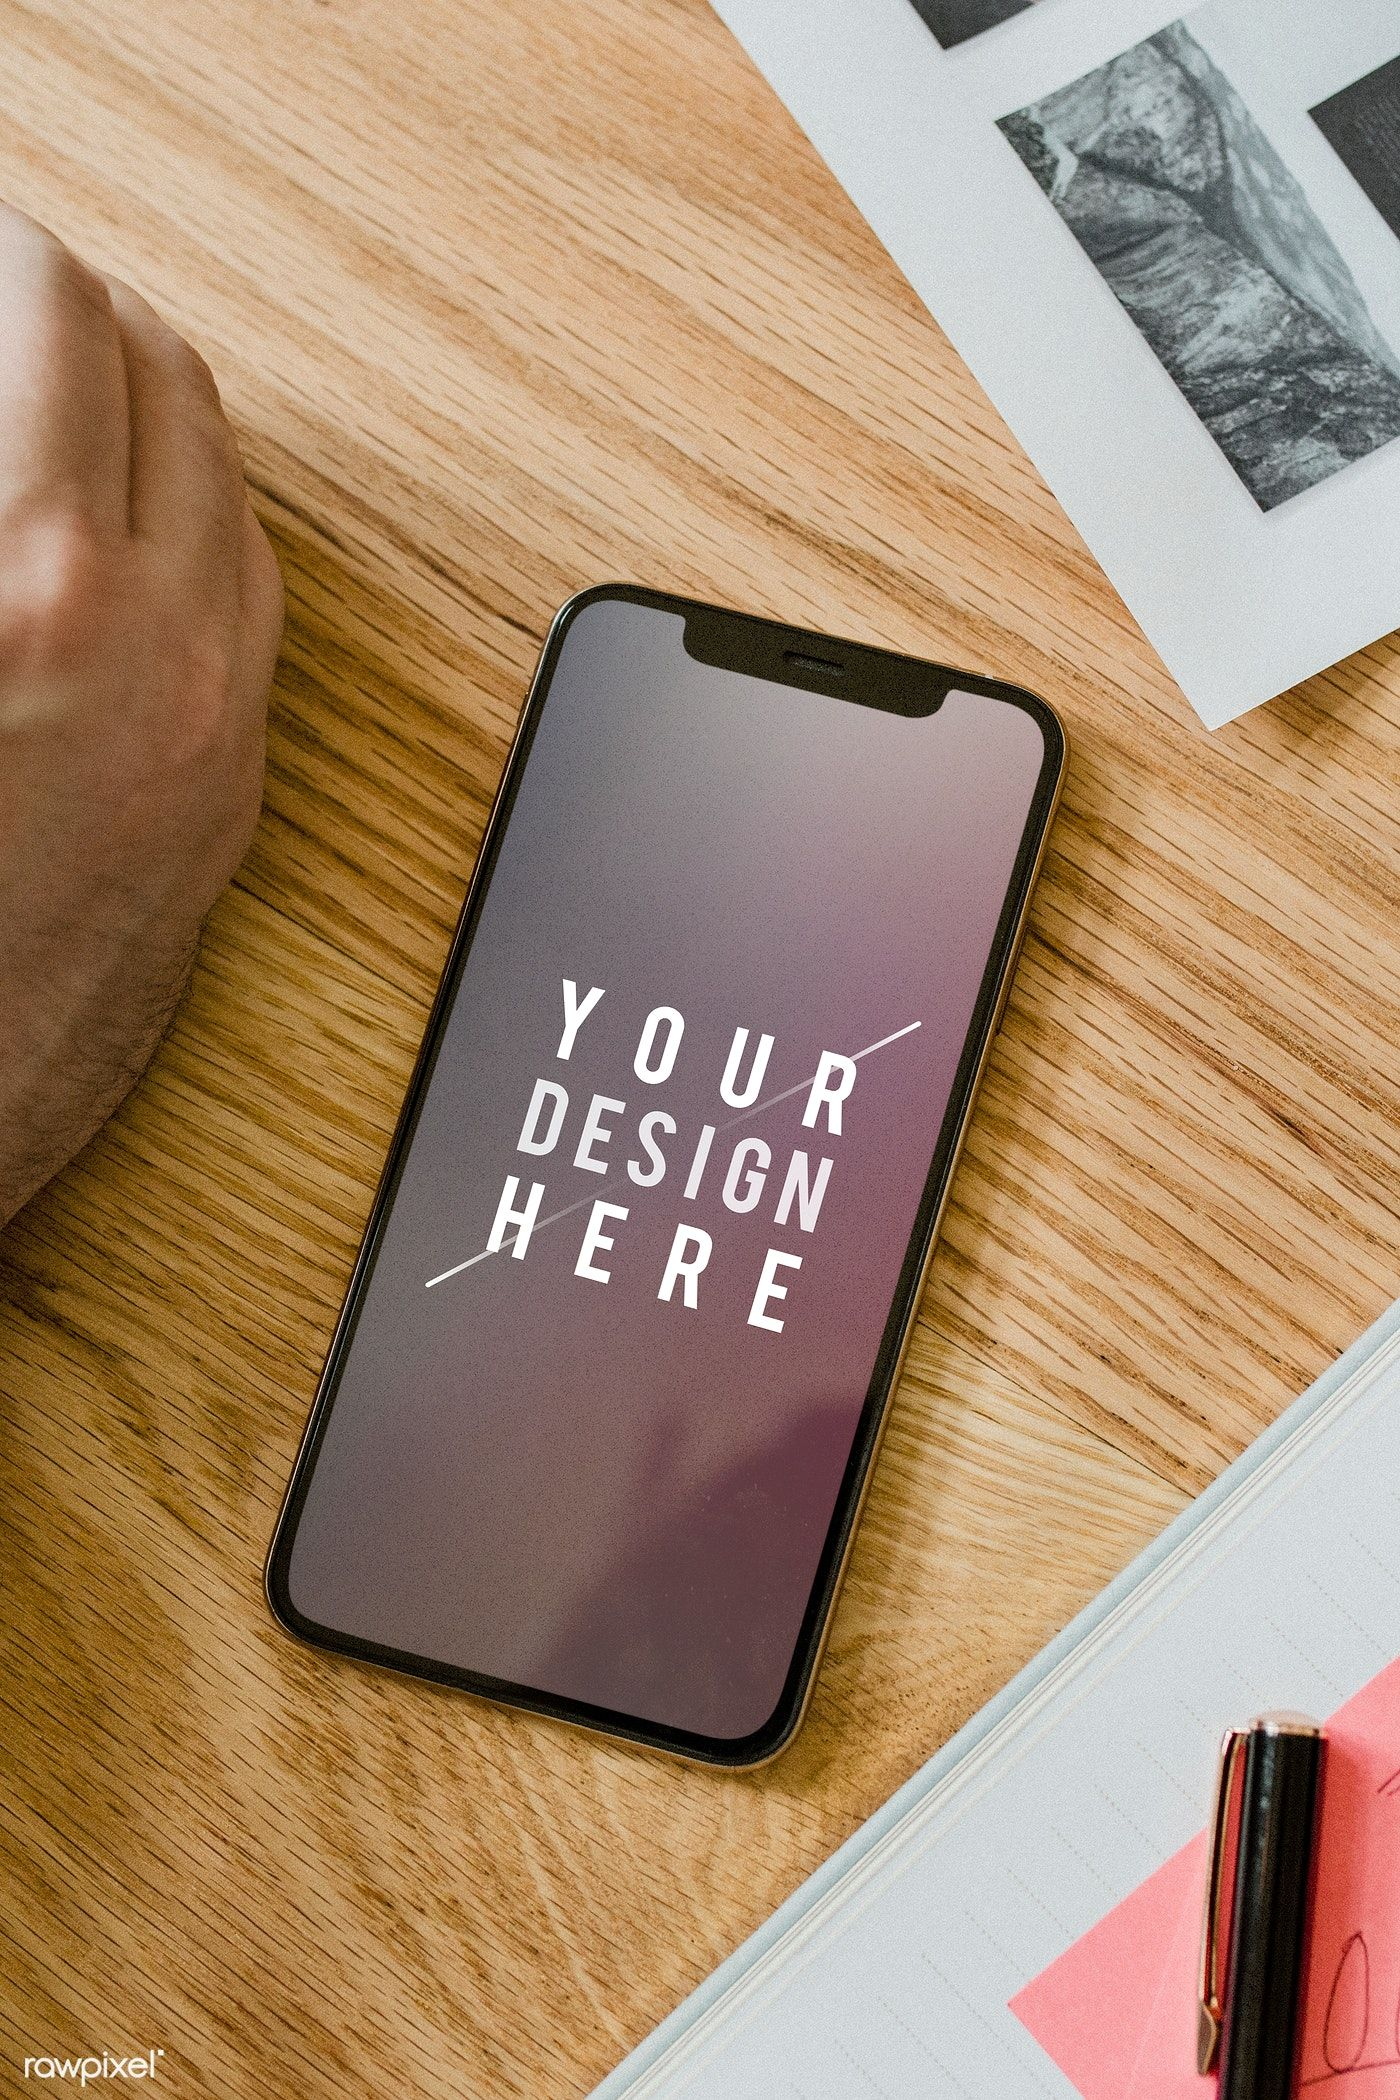 Download Premium Psd Of Blank Mobile Phone Mockup On A Wooden Table 2012934 Phone Mockup Best Mobile Phone Mobile Phone